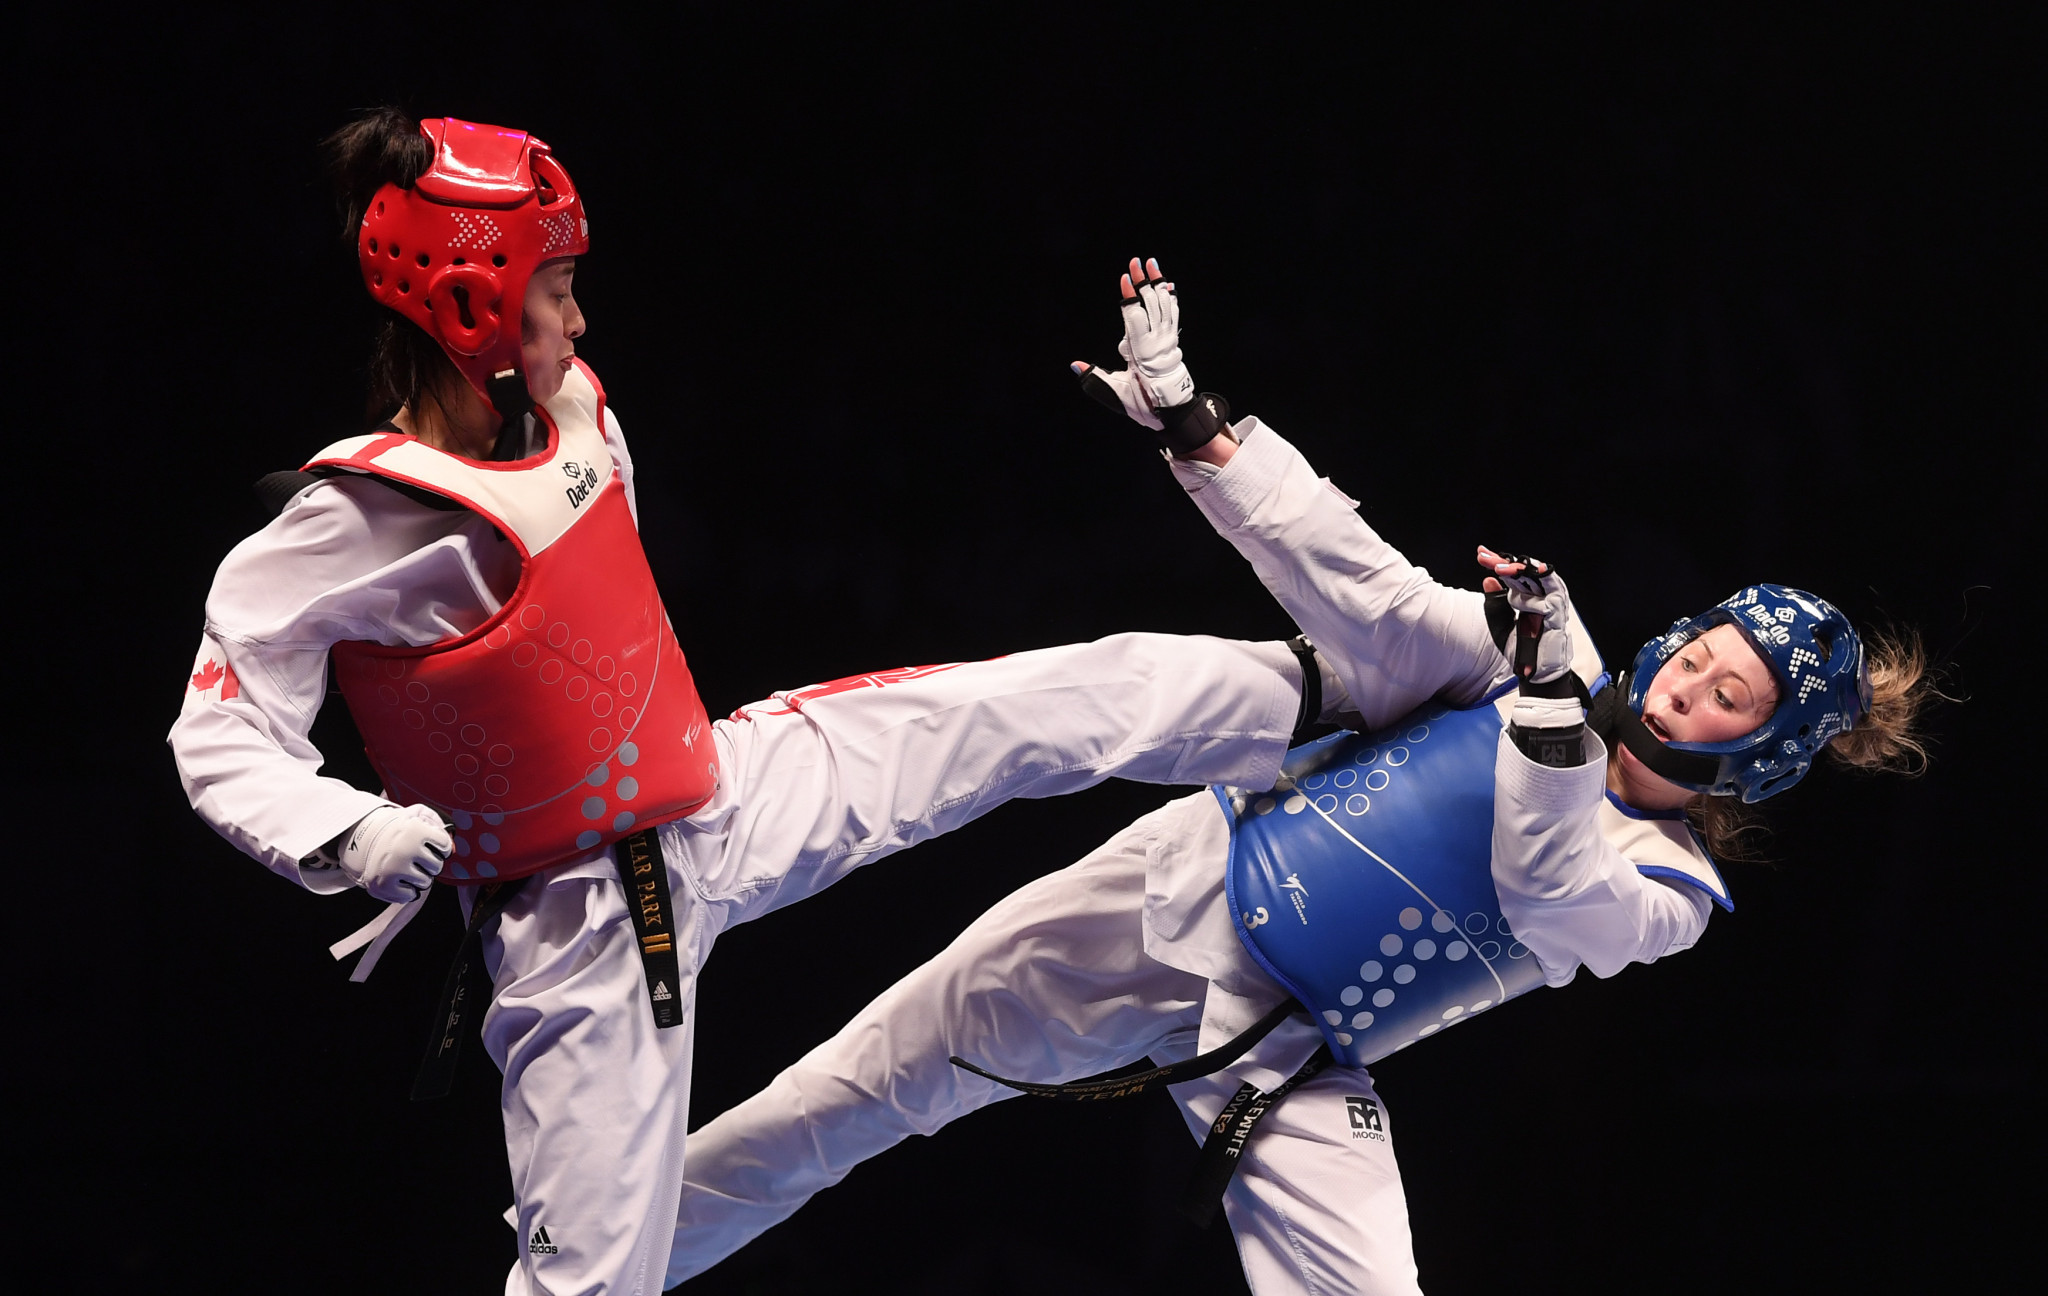 Taekwondo Canada said Guy Thibaut helped Skylar Park, left, prepare for Tokyo 2020 ©Getty Images